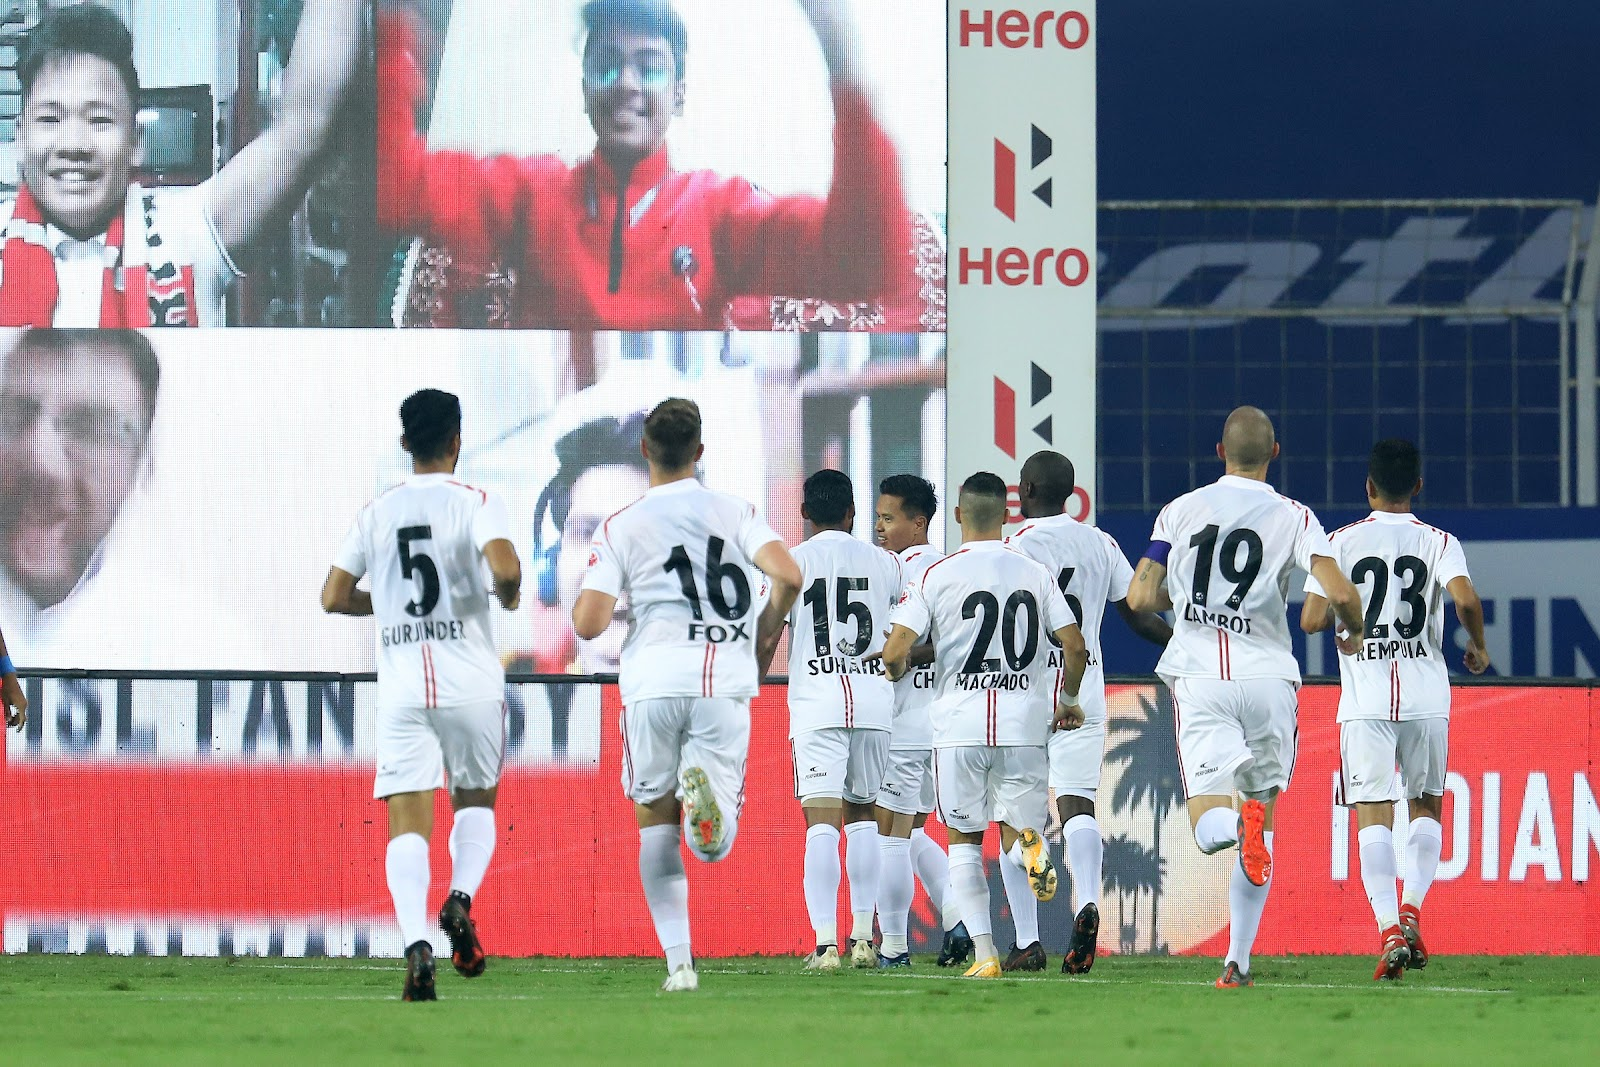 NorthEast United players celebrating the goal by VP Suhair